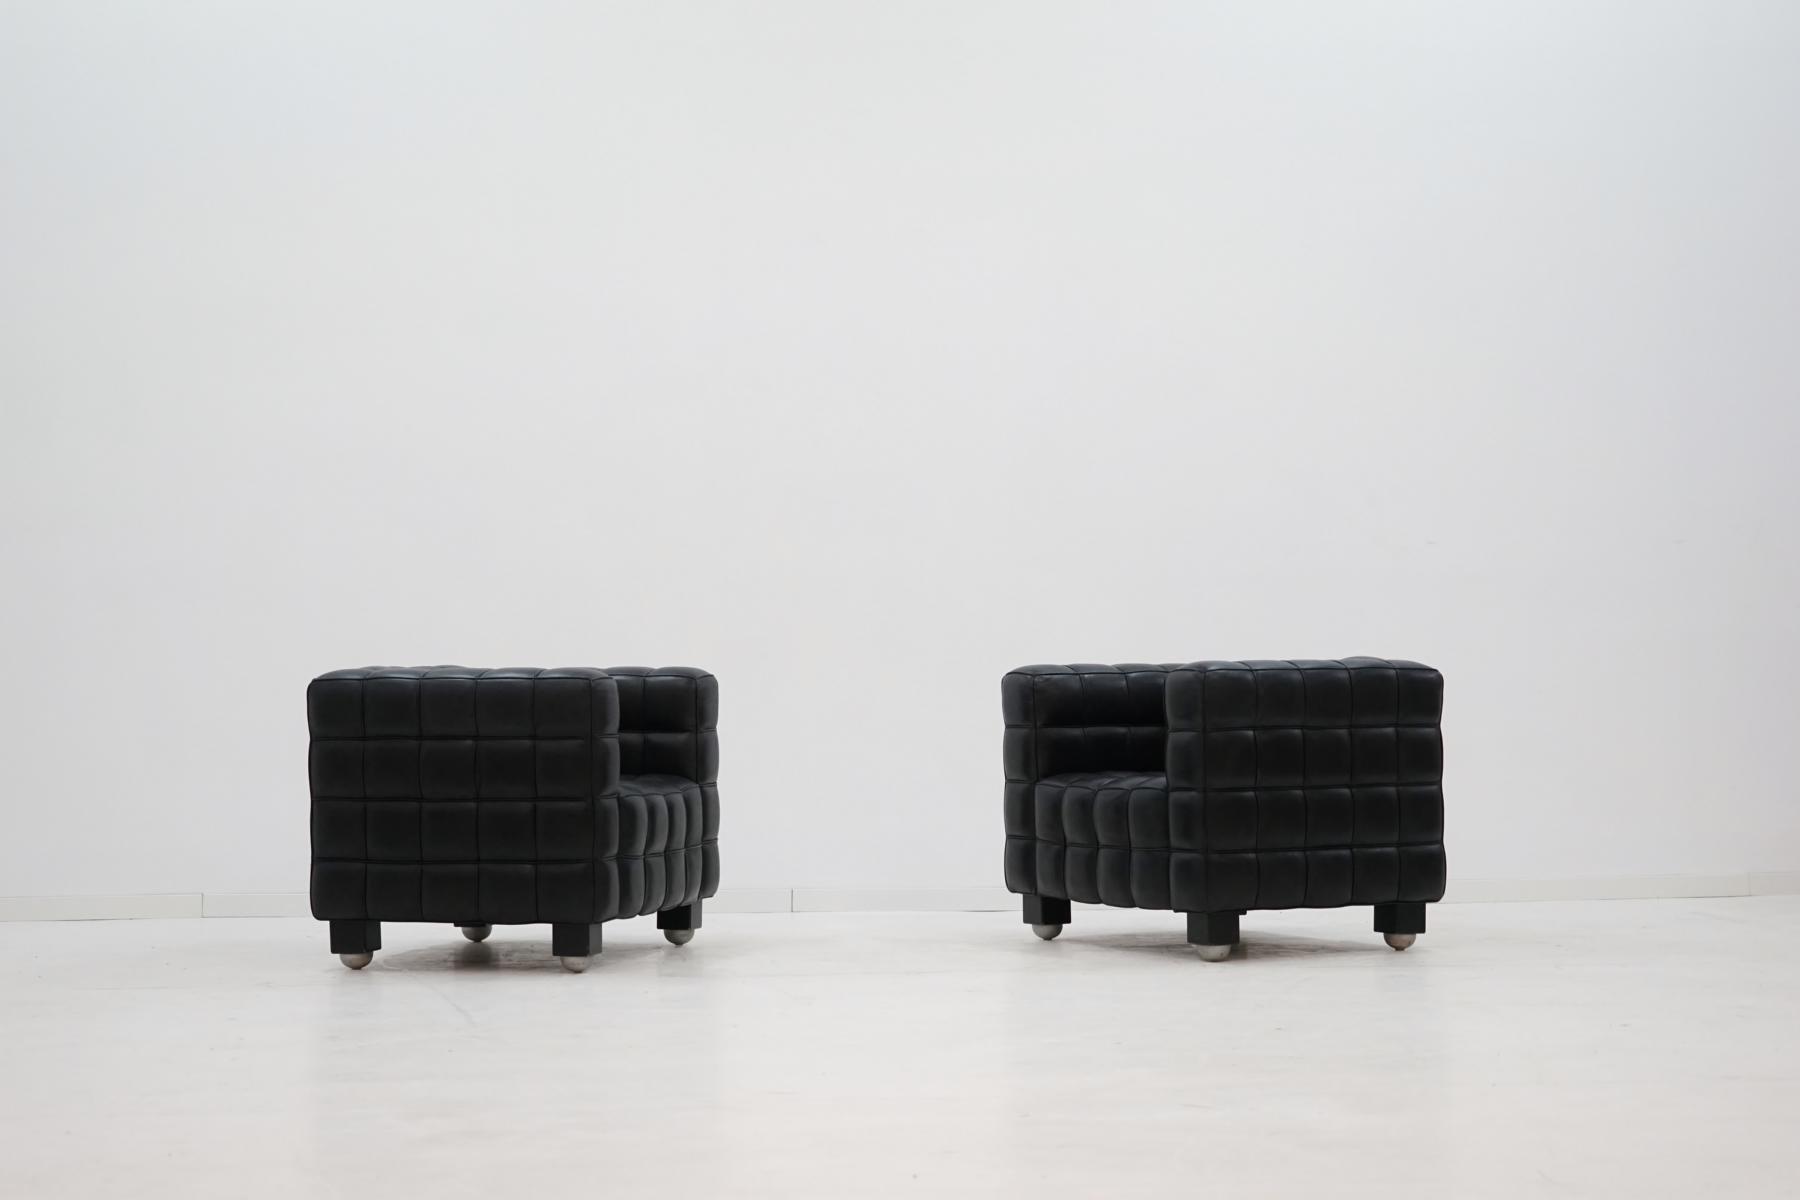 kubus sessel von josef hoffmann f r wittmann 1970er bei. Black Bedroom Furniture Sets. Home Design Ideas